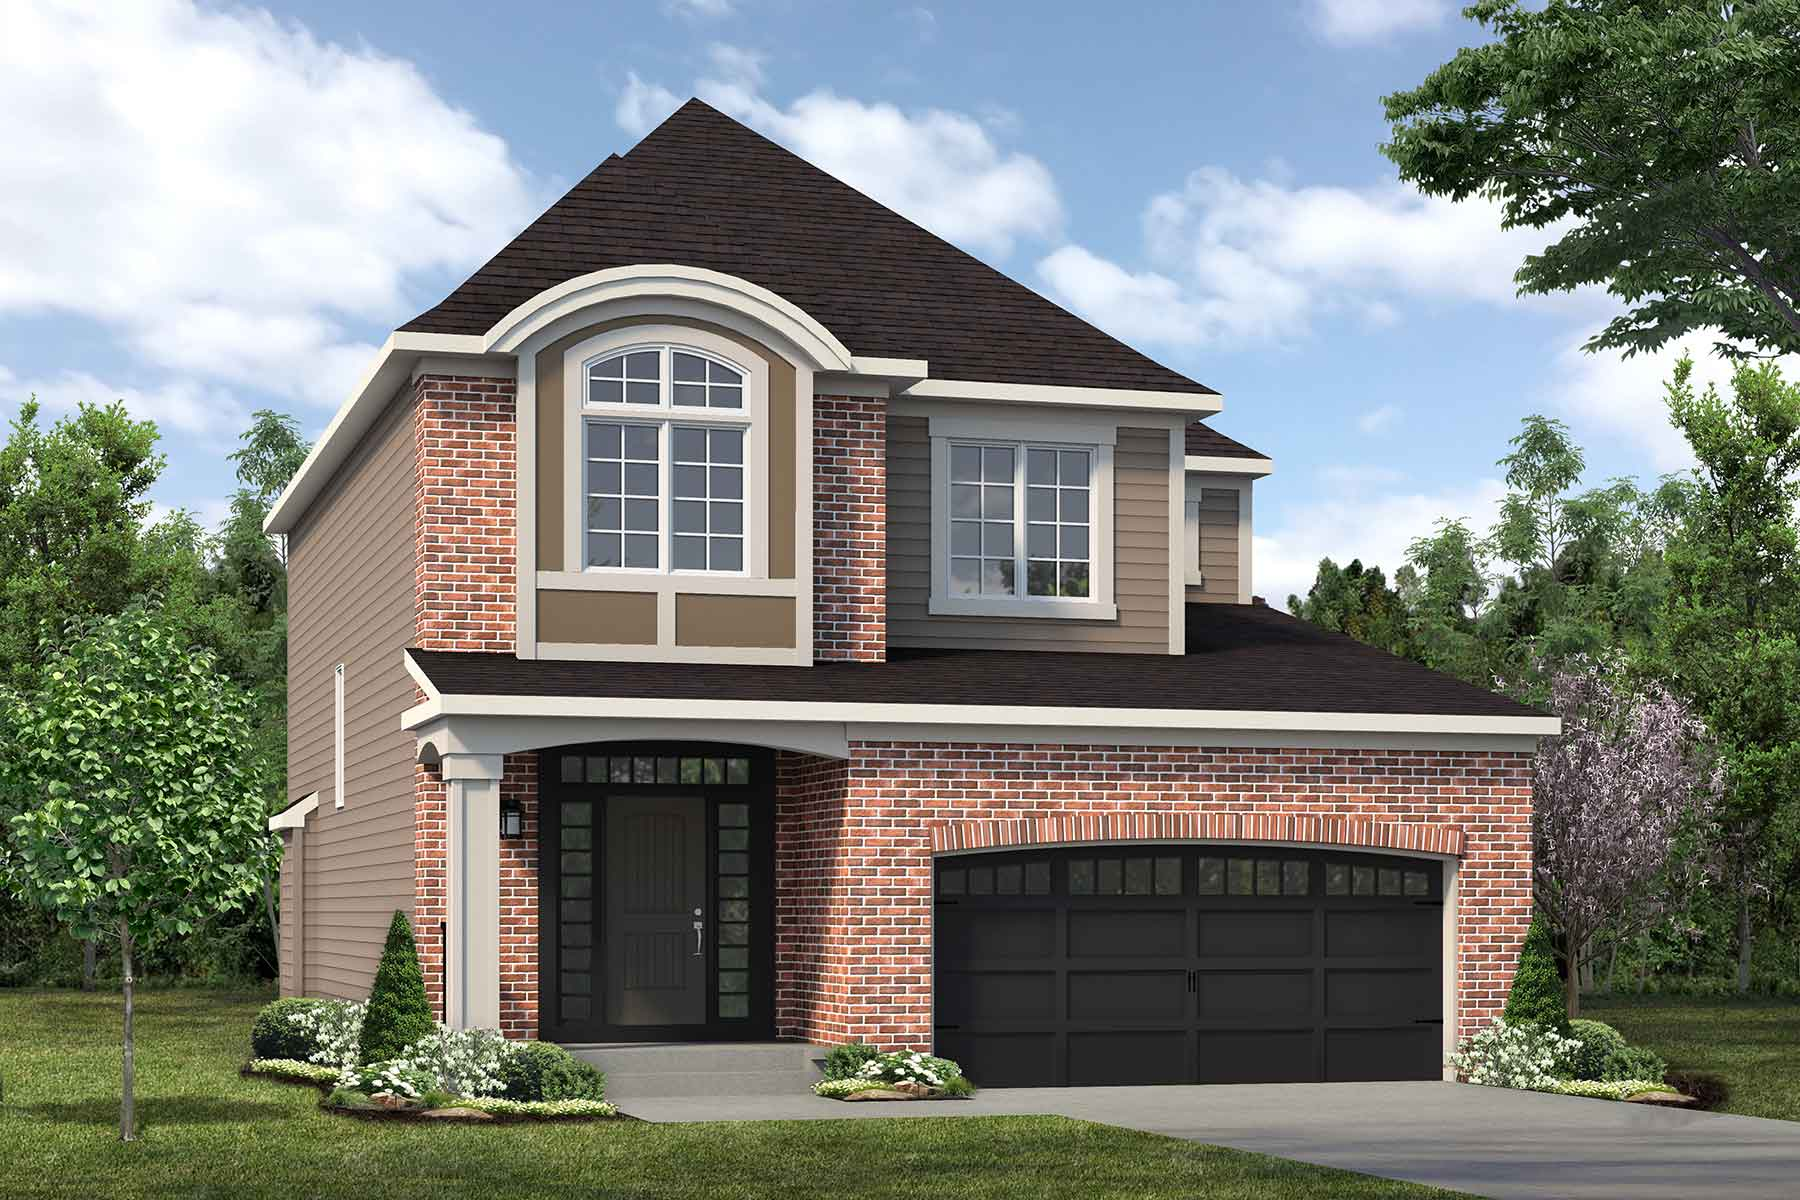 Riedel Plan elevationgeorgiancolonial_carringtonenclave_riedel_main at The Enclave In Carrington in Calgary Alberta by Mattamy Homes